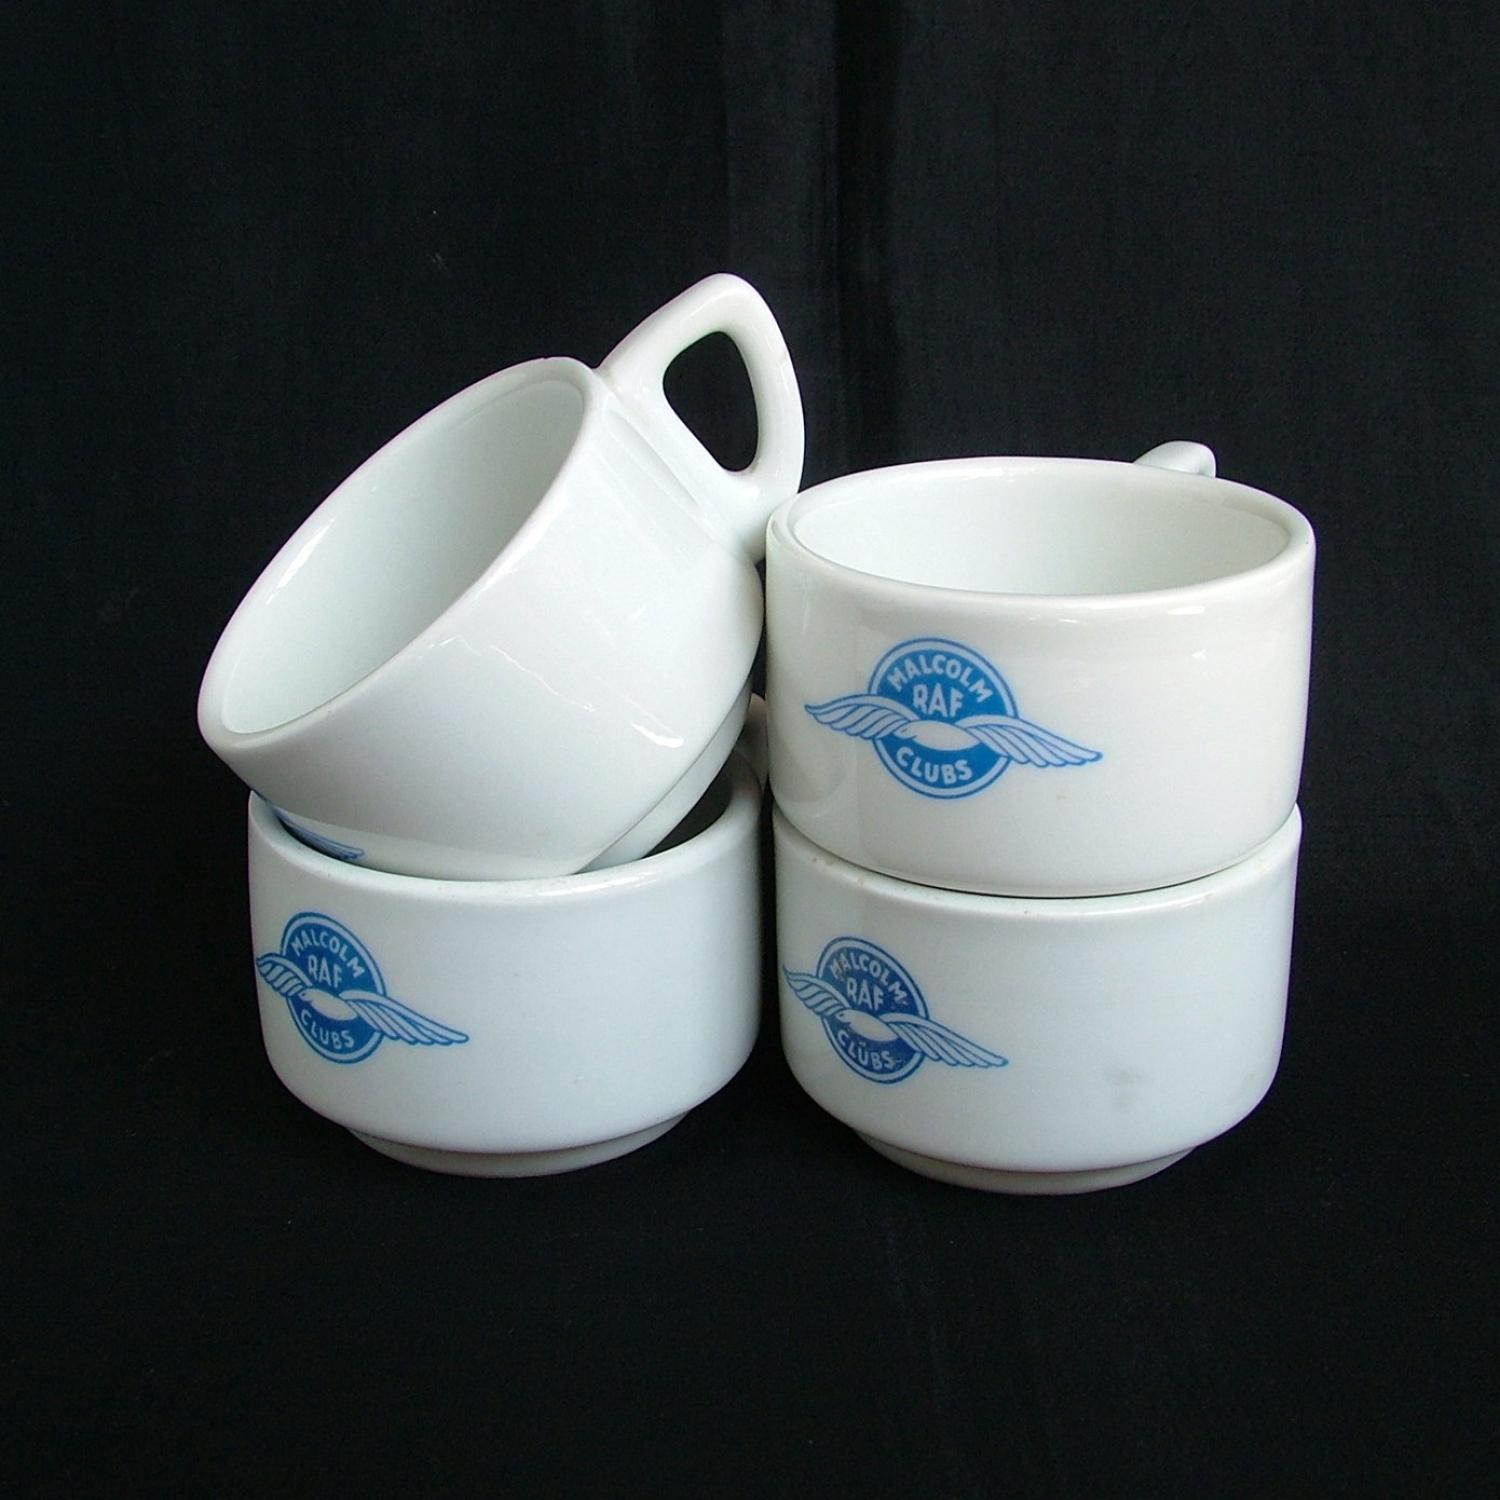 RAF Malcolm Clubs Coffee/Tea Cups